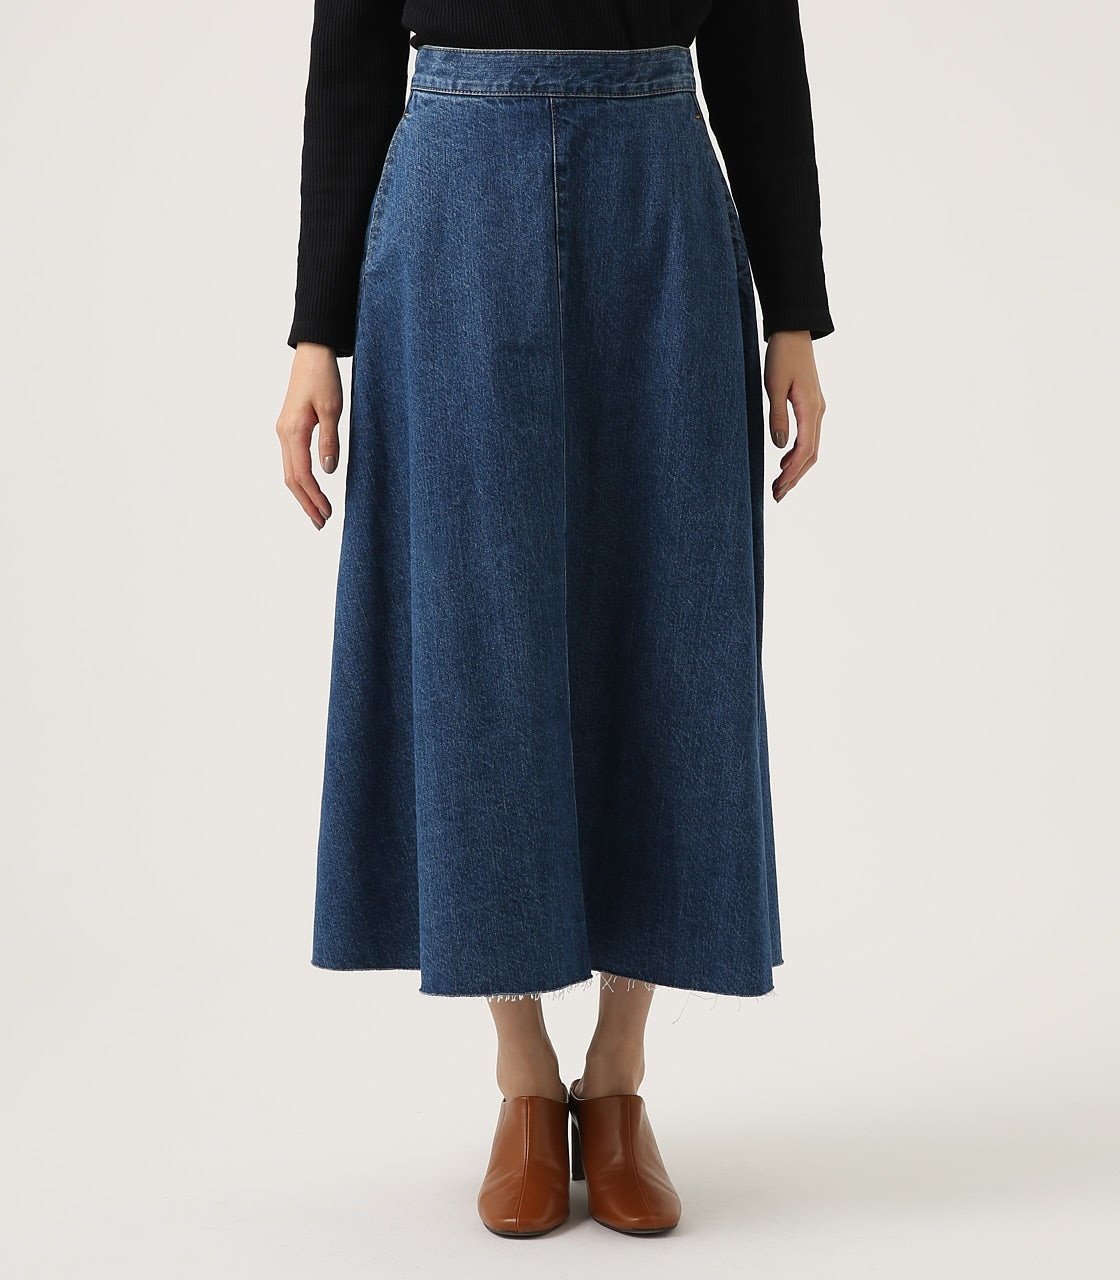 CUT OFF FLARE DENIM LONG SKIRT 詳細画像 BLU 5